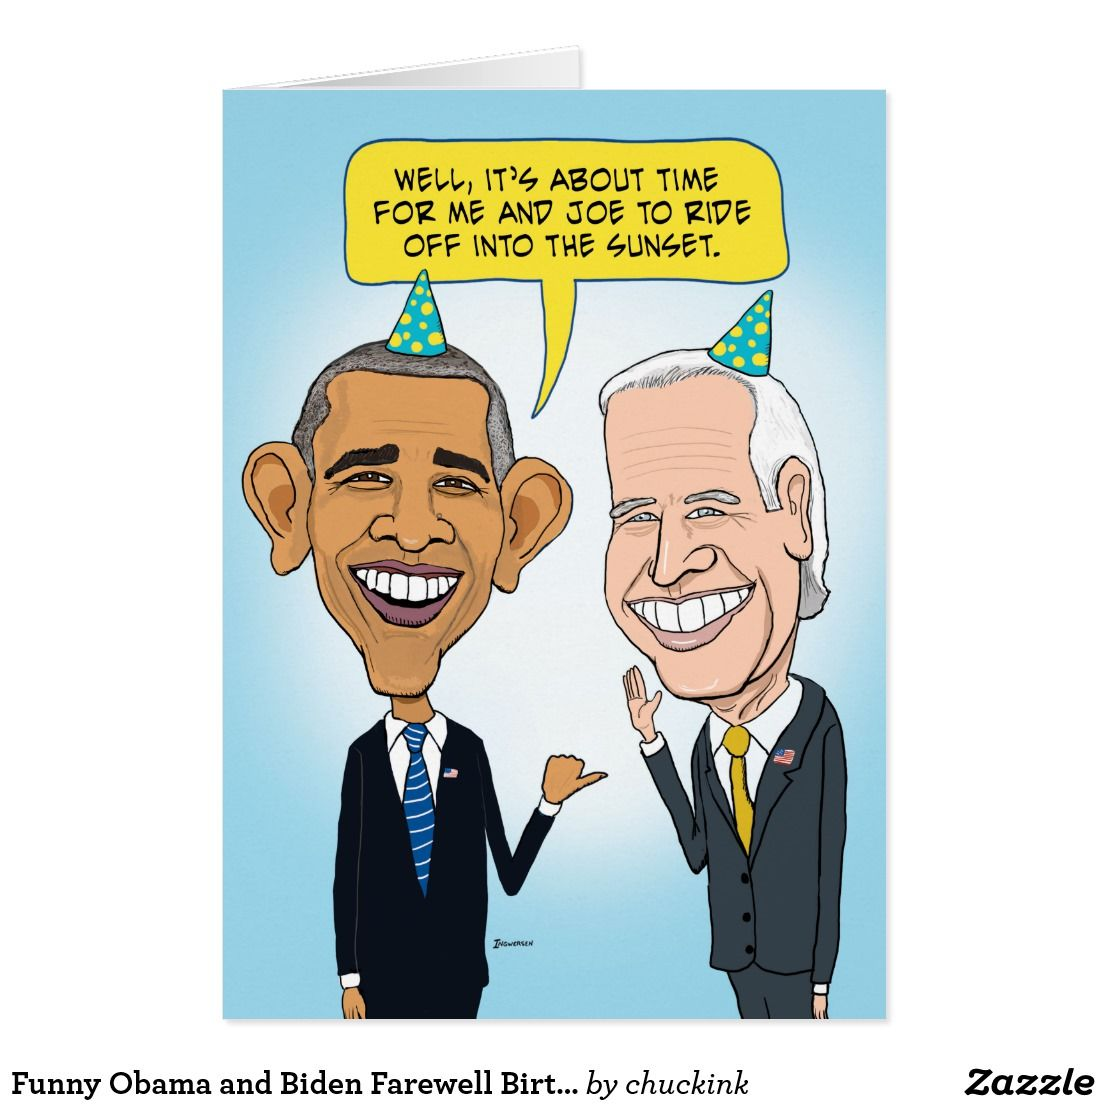 Obama and biden farewell birthday card funny obama and biden farewell birthday card kristyandbryce Choice Image